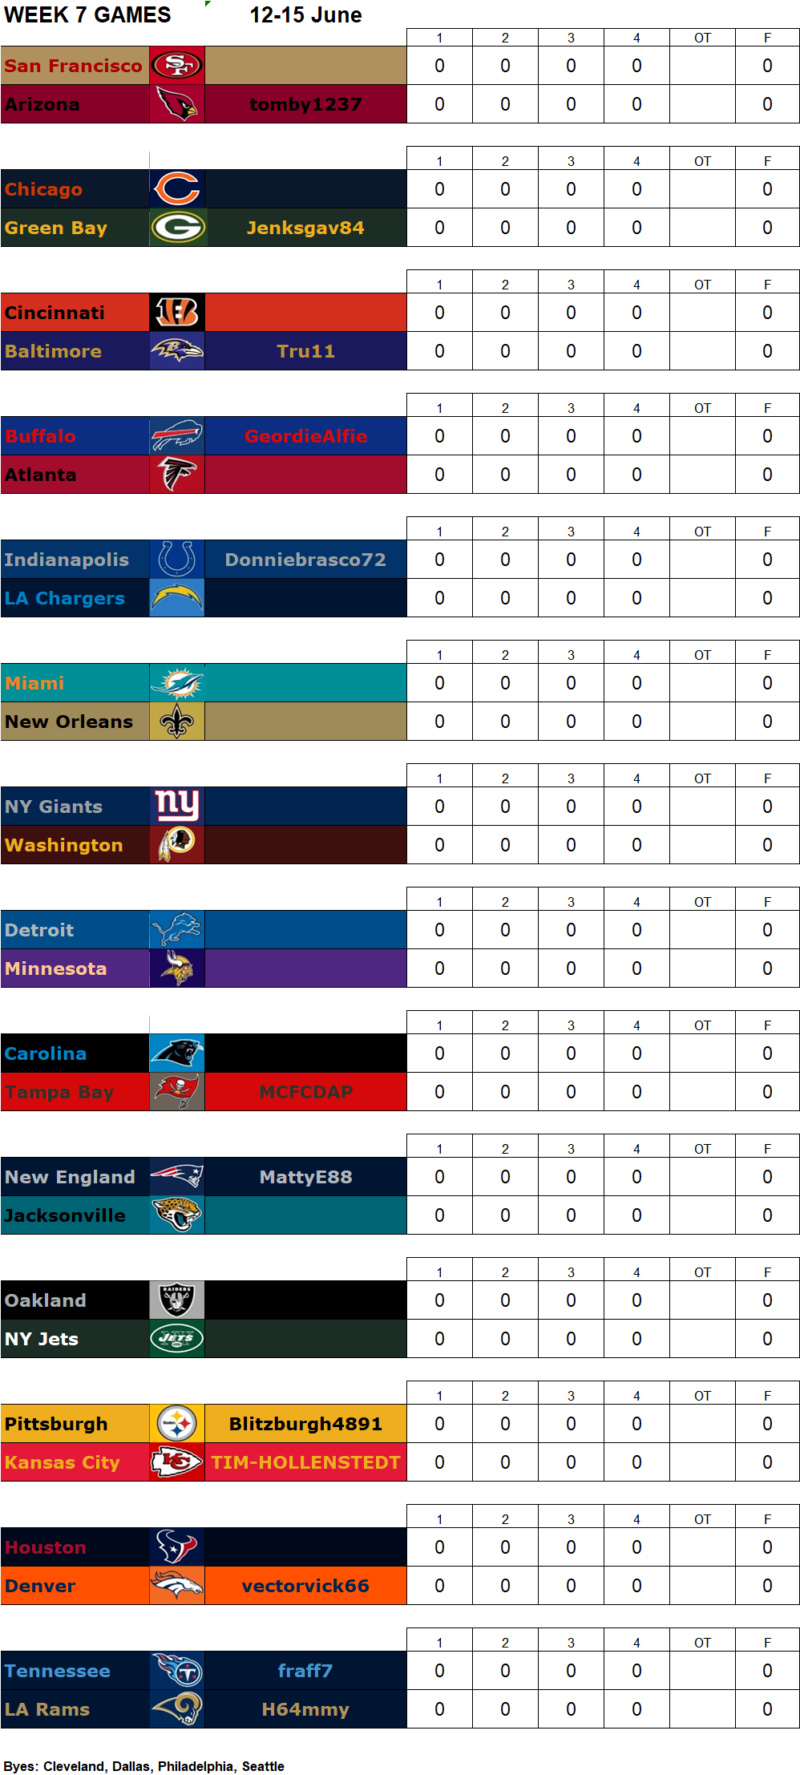 Week 7 Matchups, 12-15 June W7g14